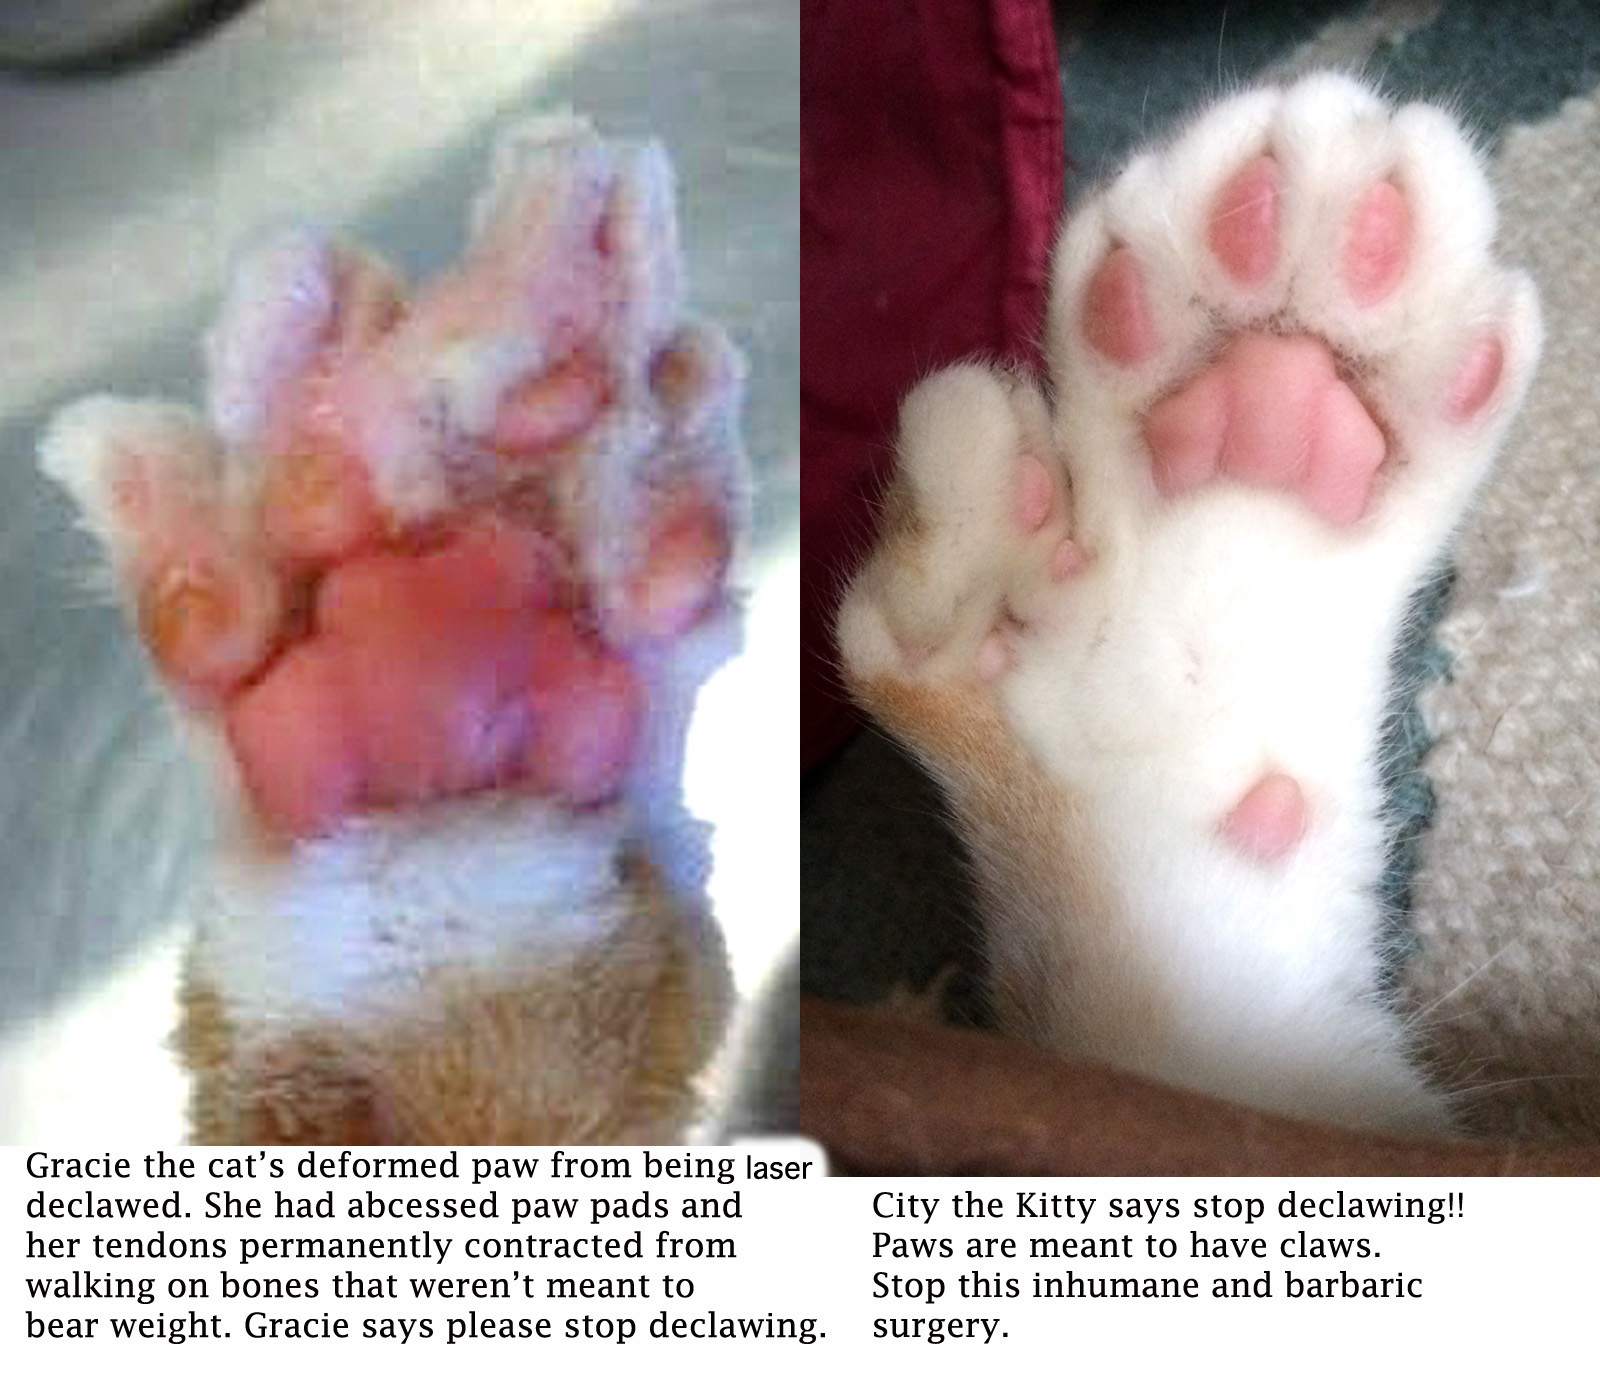 declawing cats humane - photo #28